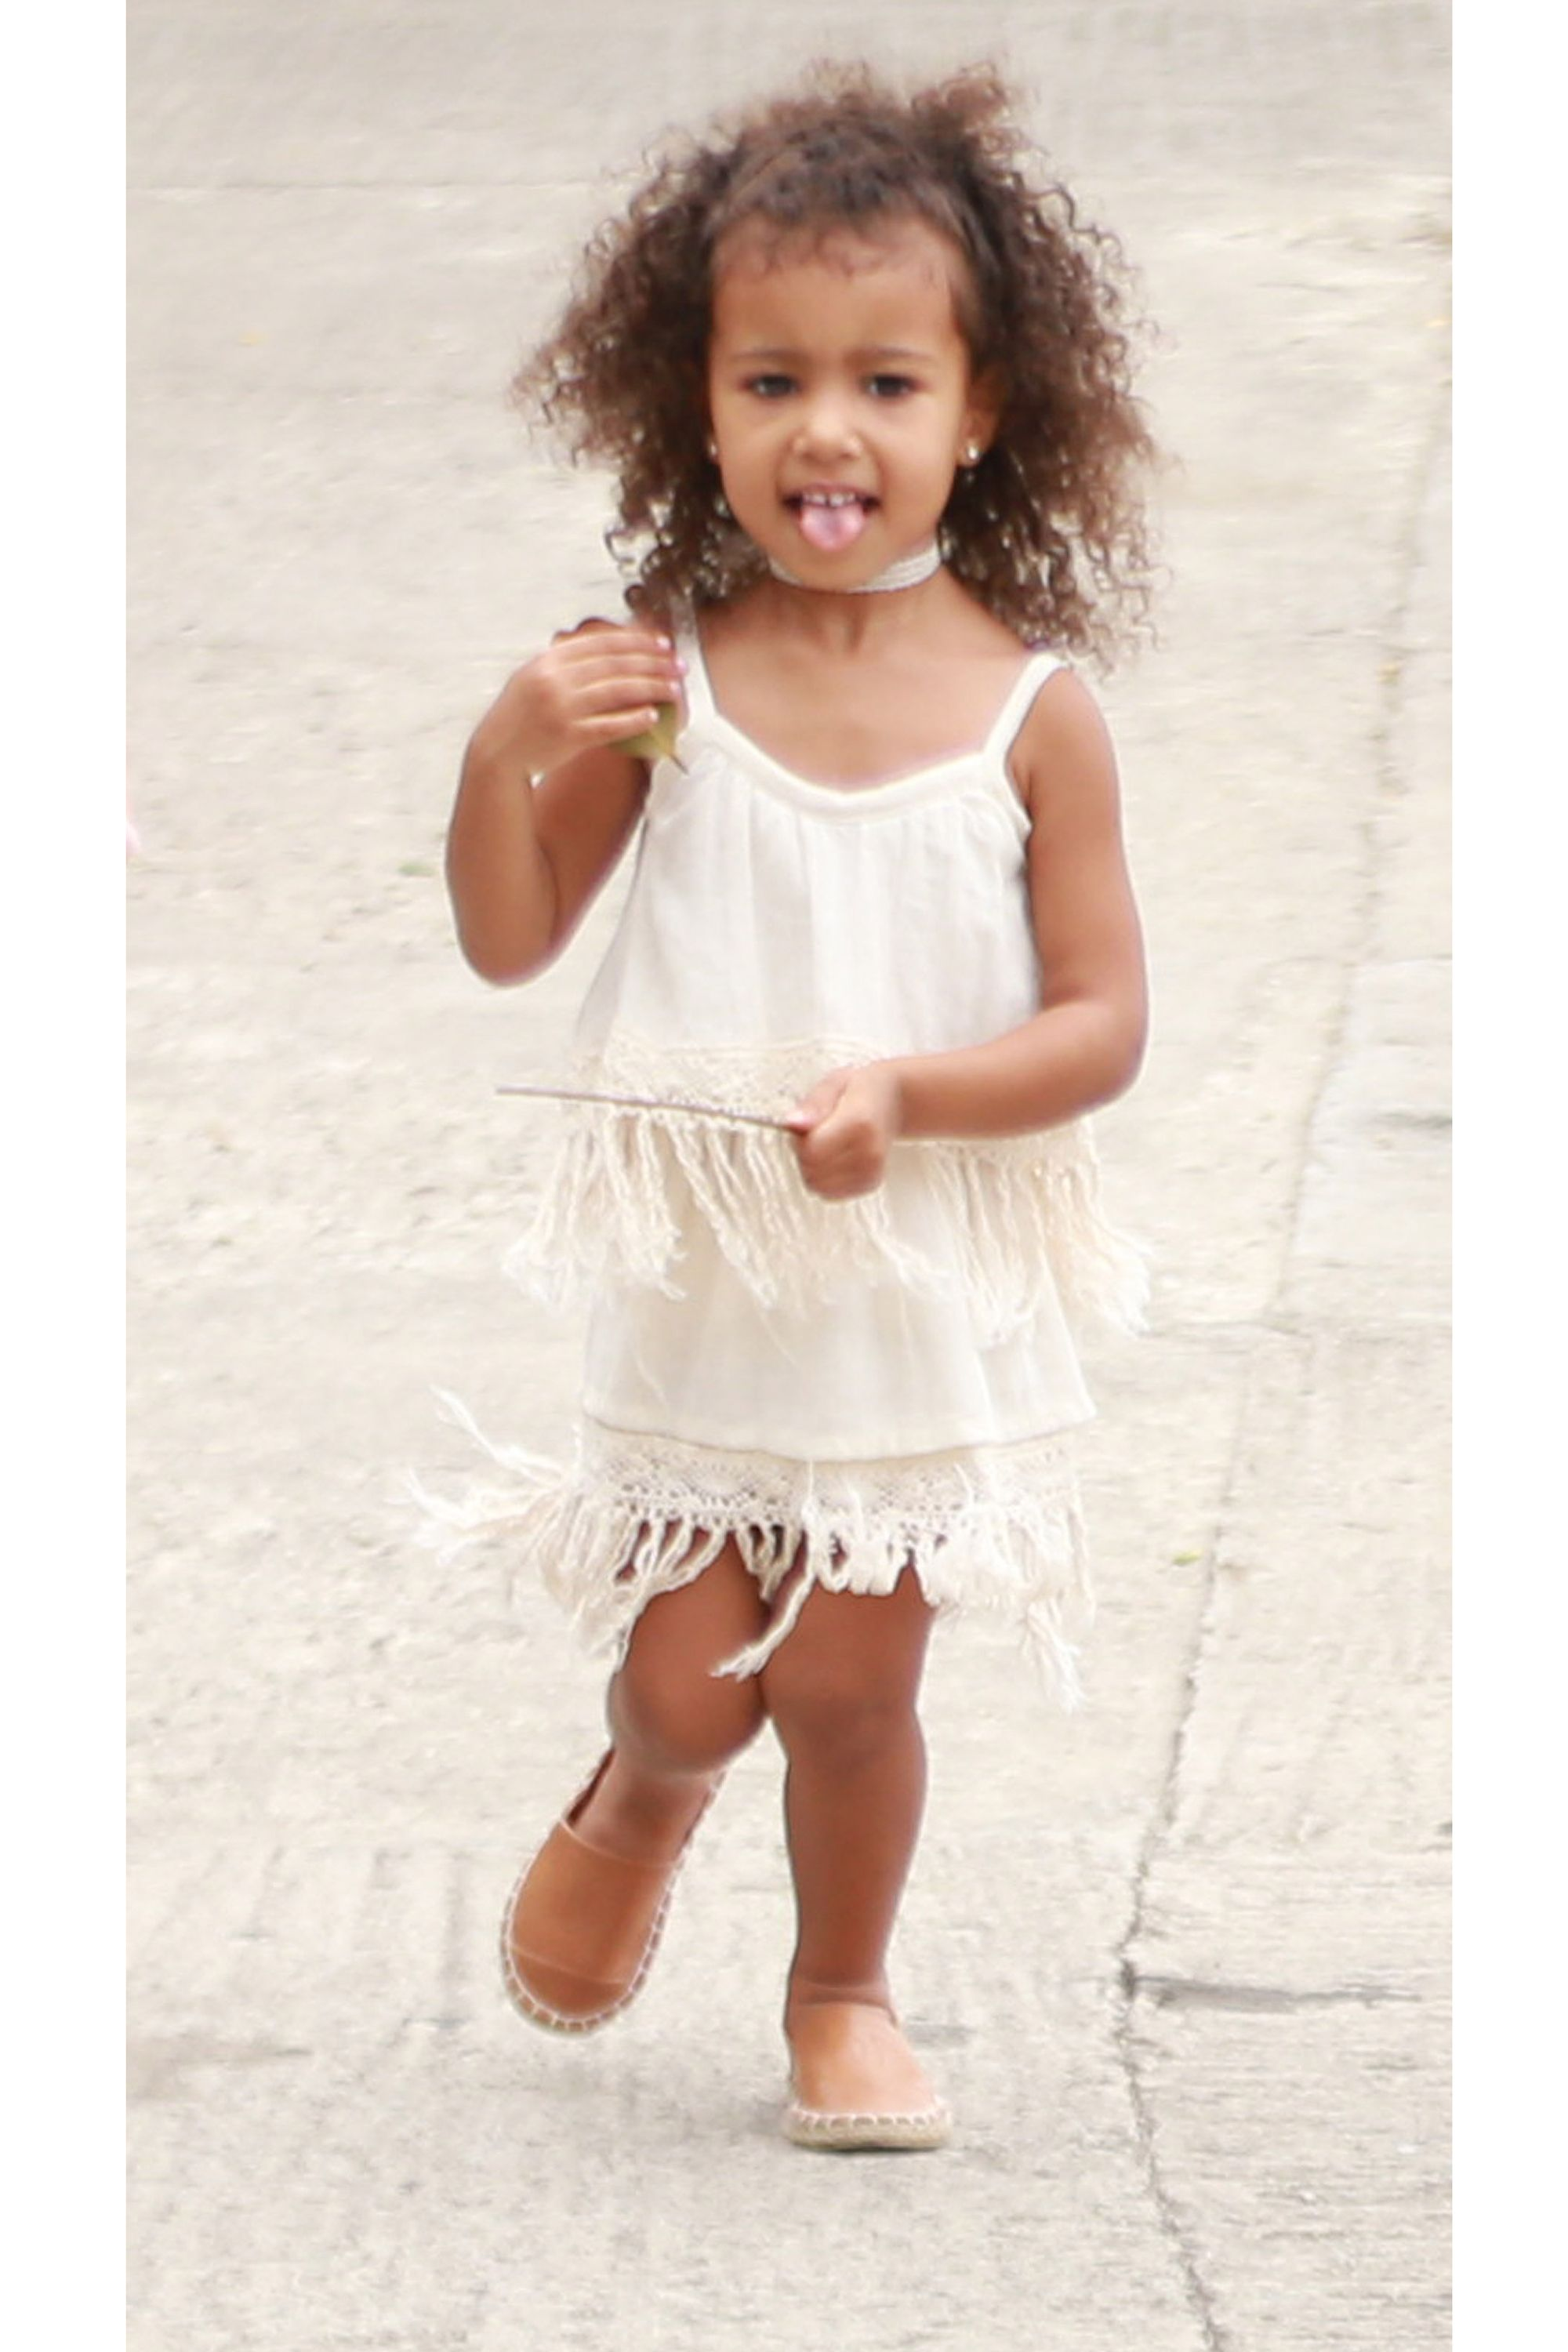 bc846ac2b67f7 North West Cutest Outfits - Pictures of North West s Best Fashion Looks